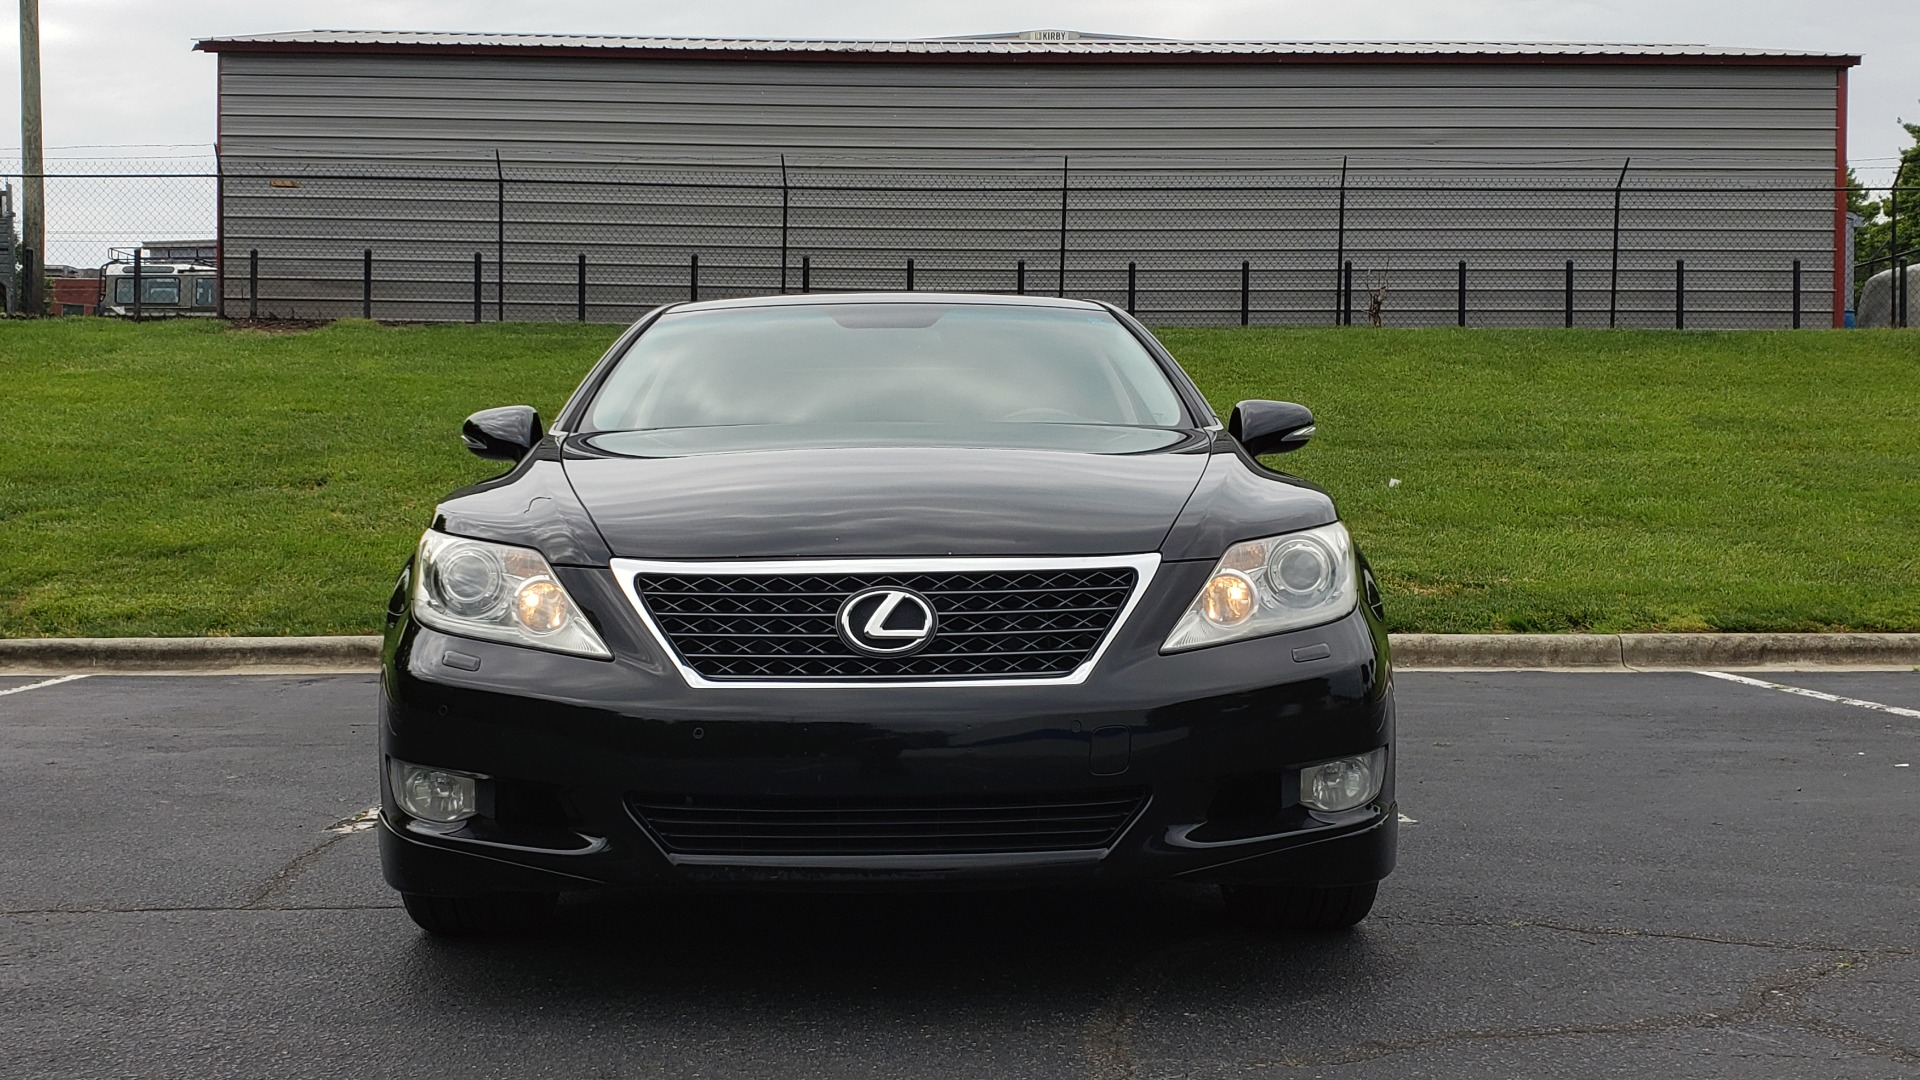 Used 2012 Lexus LS 460 COMFORT W/SPORT / VENT SEATS / NAV / MARK LEV SND / SUNROOF for sale Sold at Formula Imports in Charlotte NC 28227 22